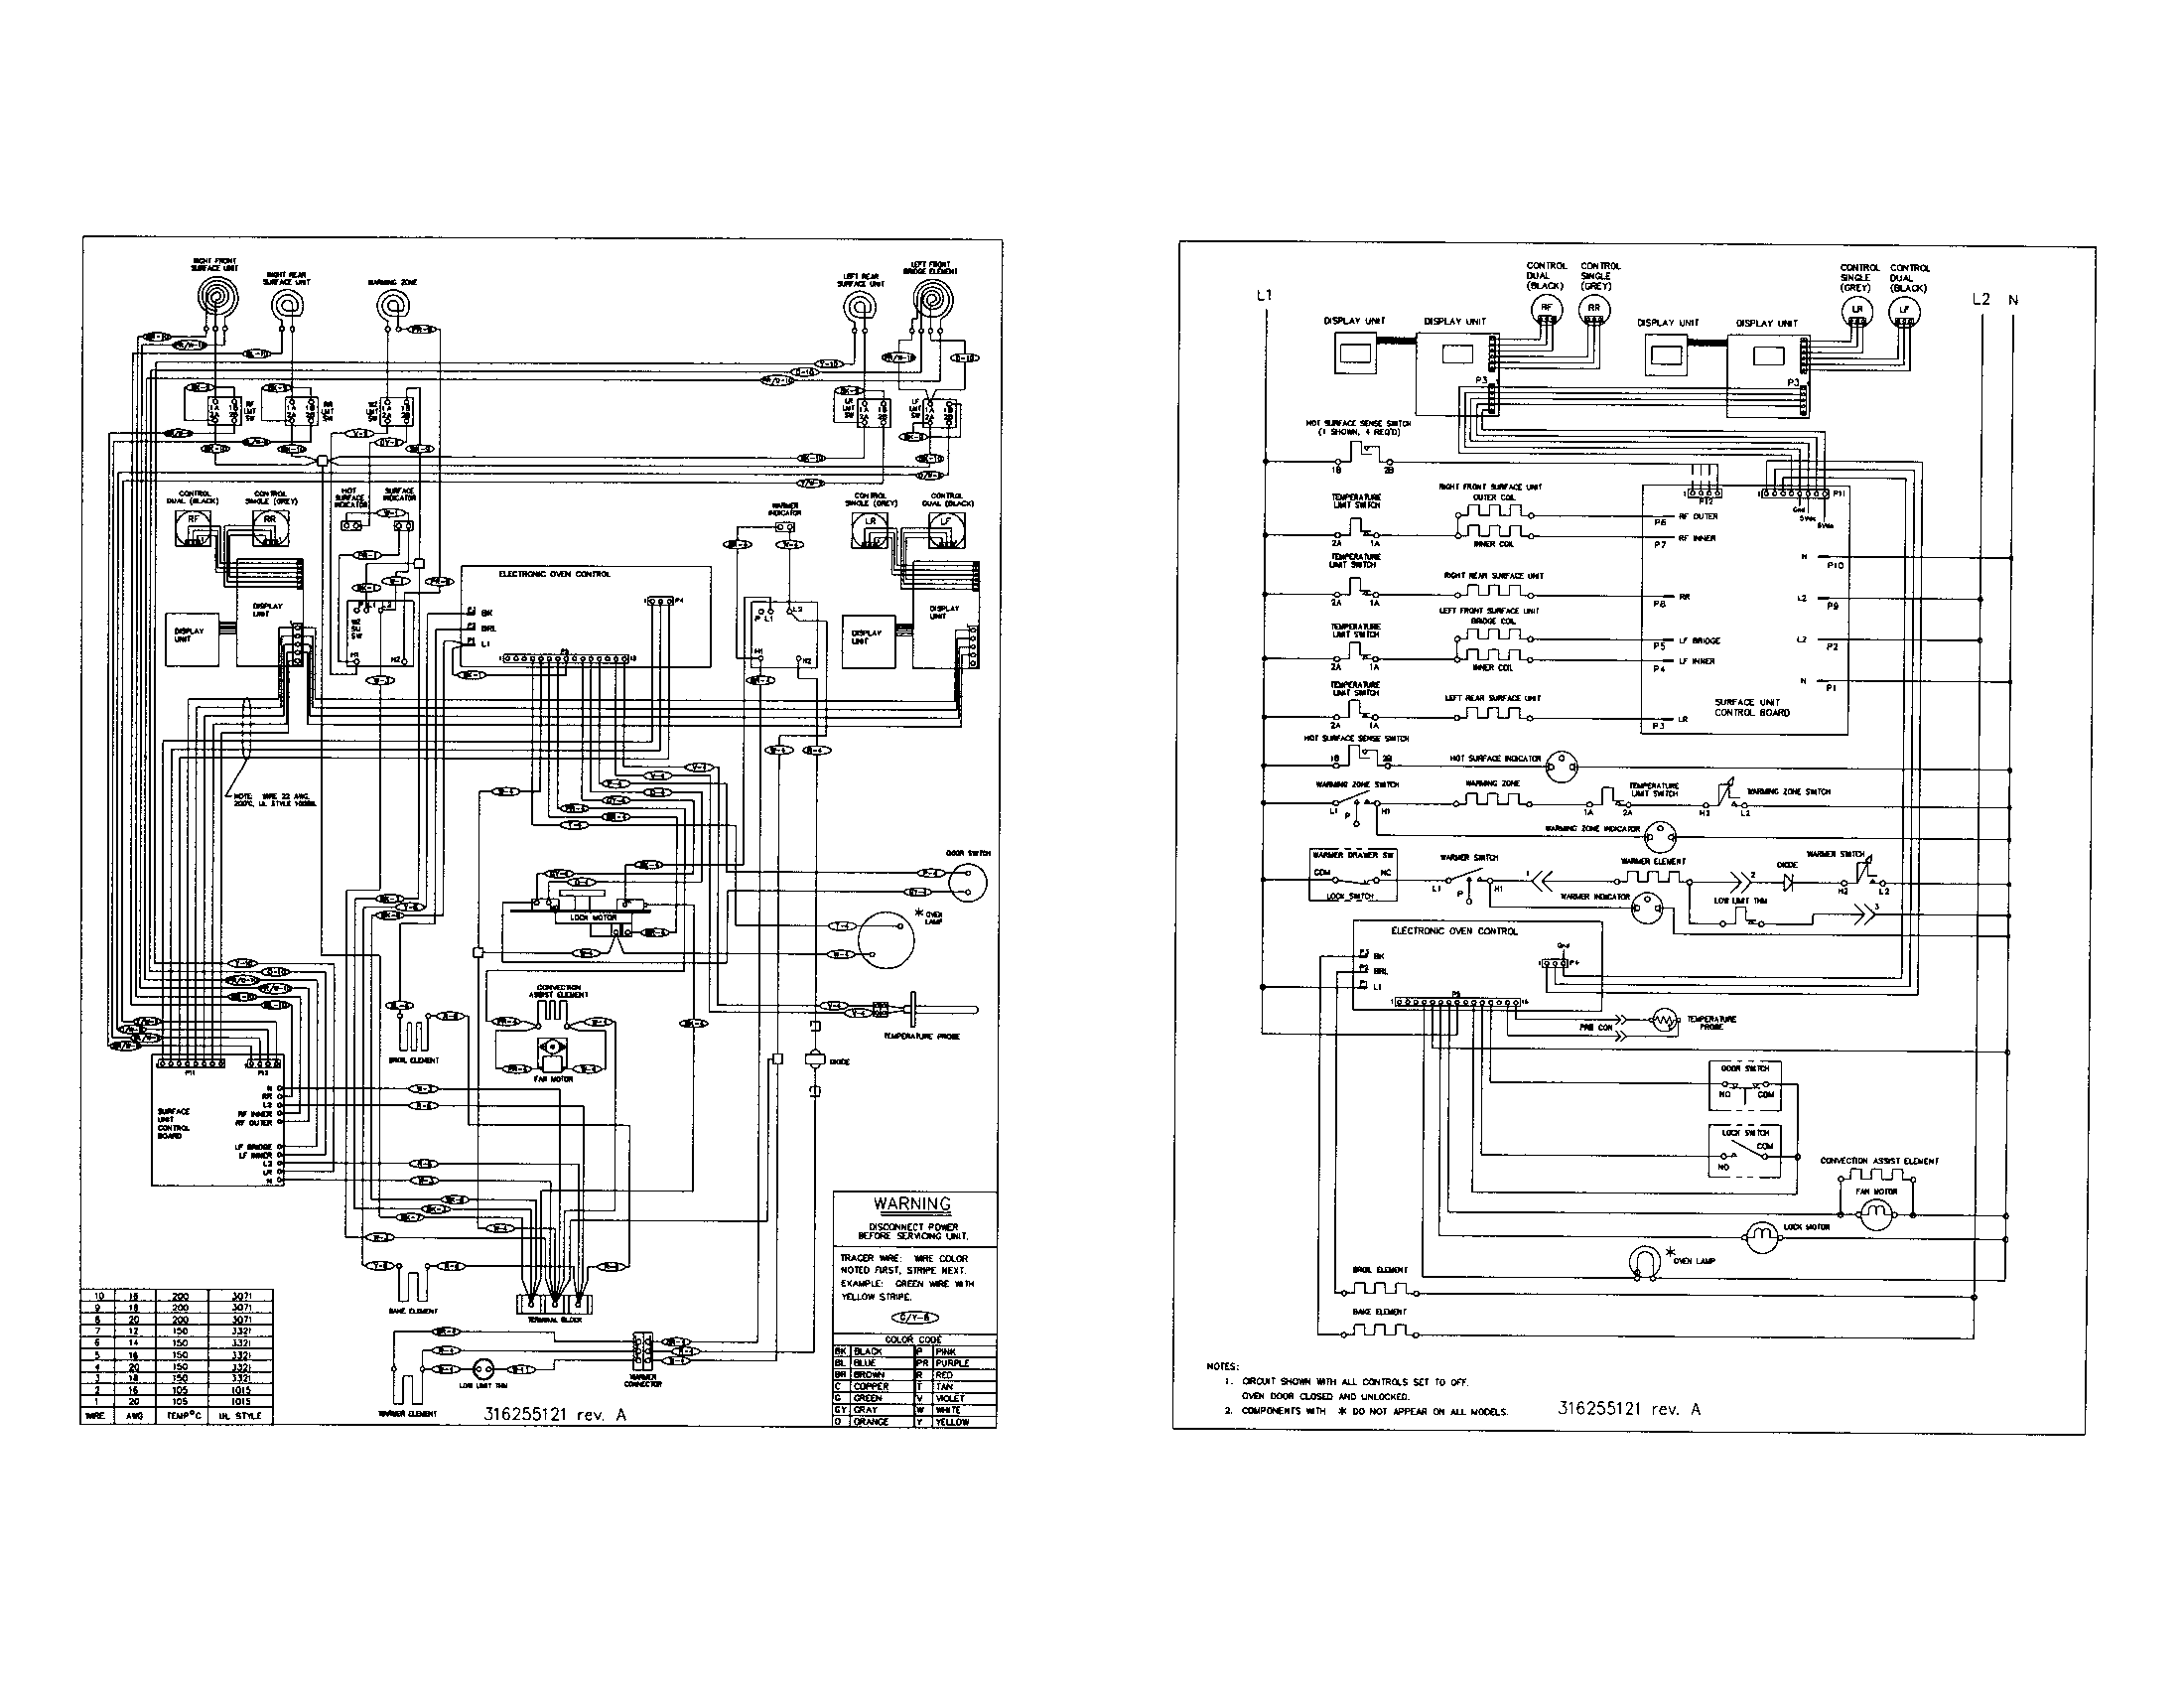 wiring diagram parts?resize\\\\\\\\\\\\\\\\\\\\\\\\\\\\\\\\\\\\\\\\\\\\\\\\\\\\\\\\\\\\\\\=665%2C513 electric oven wiring diagram & general electric oven wiring universal oven thermostat wiring diagram at gsmx.co